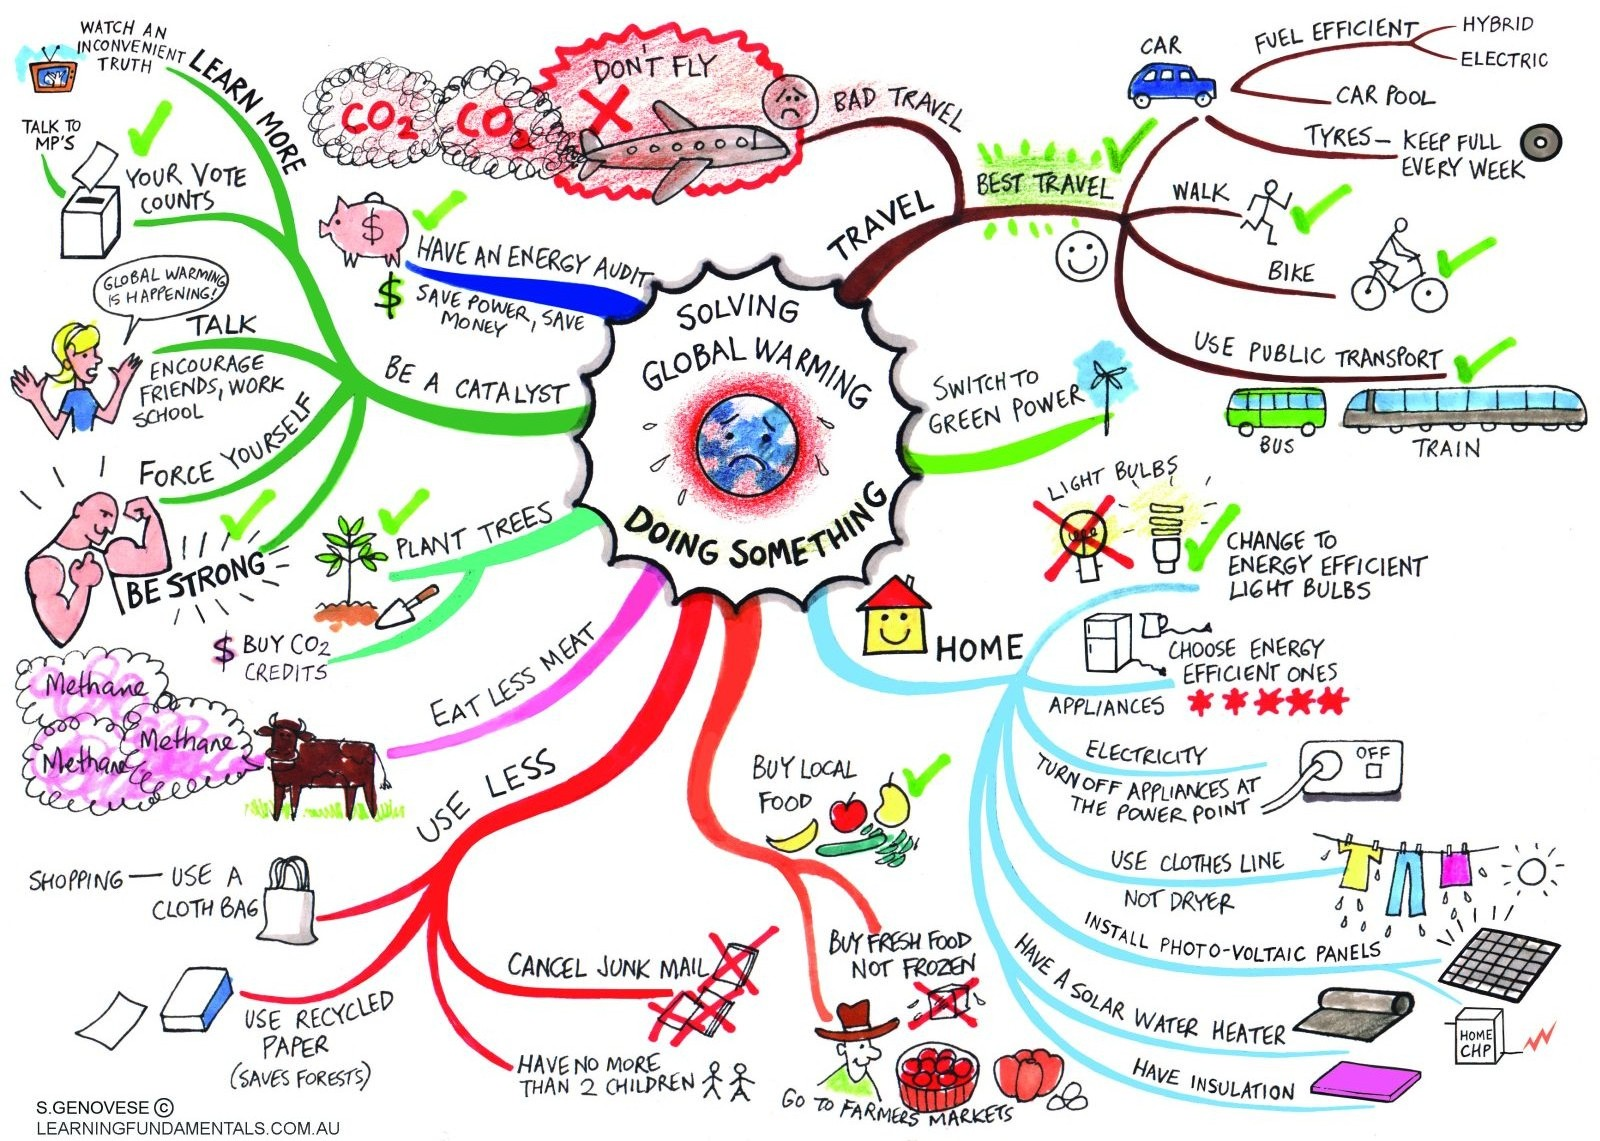 http://ddata.over-blog.com/3/18/86/31/2nde/Global-Warming/global-warming-mind-map.jpg